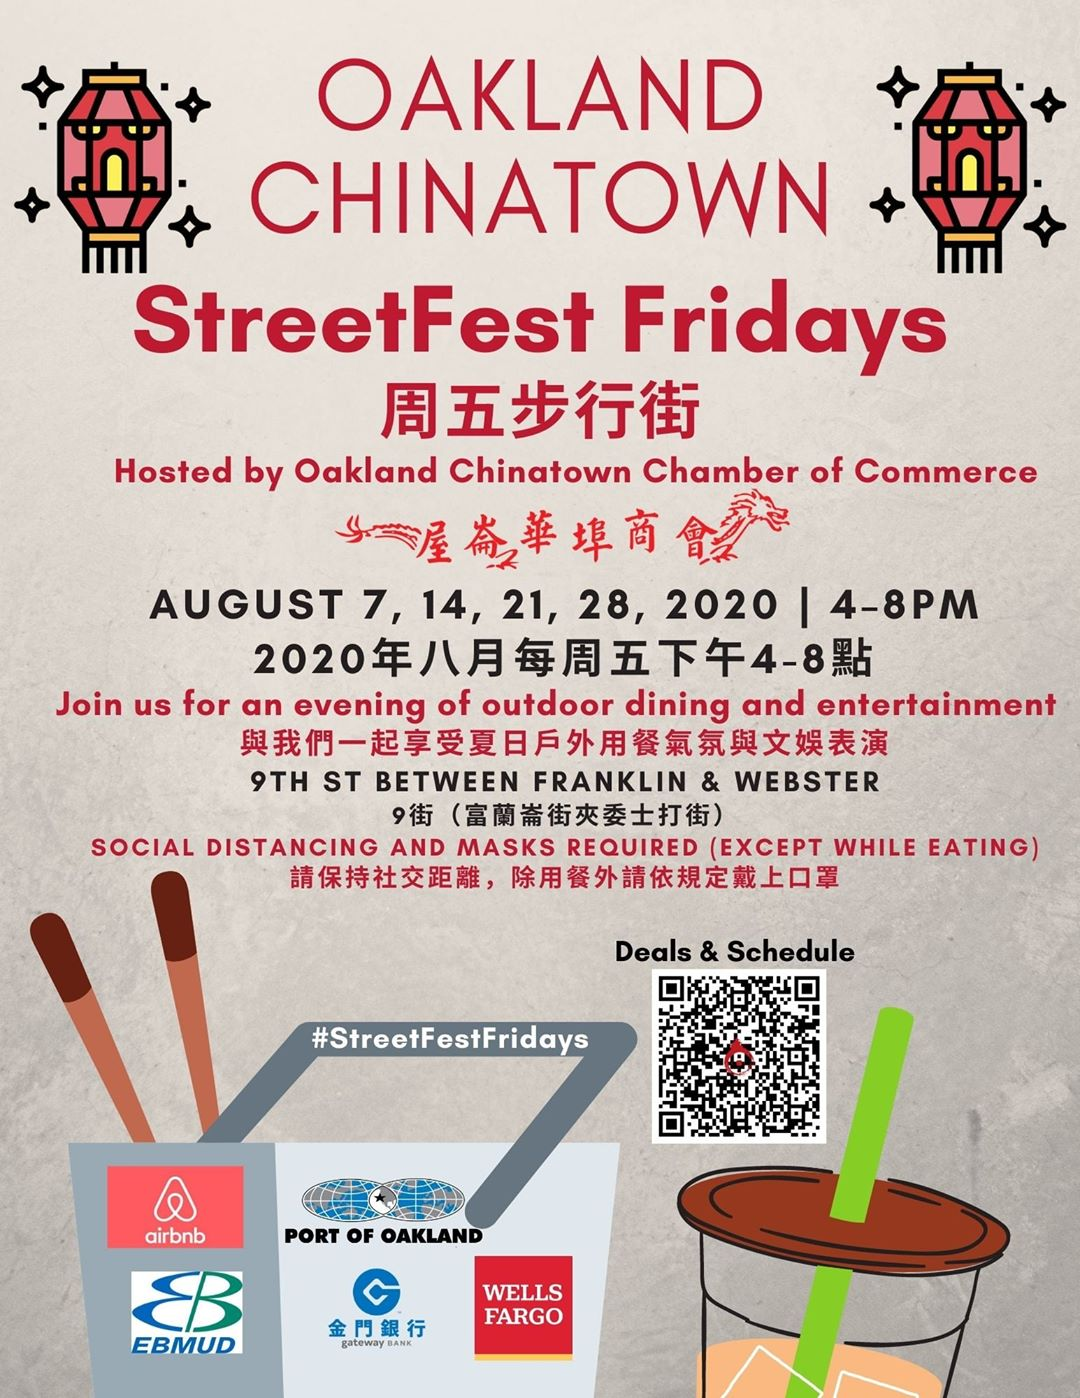 """A flyer with an image of boba tea and """"Oakland Chinatown StreetFest Fridays"""""""